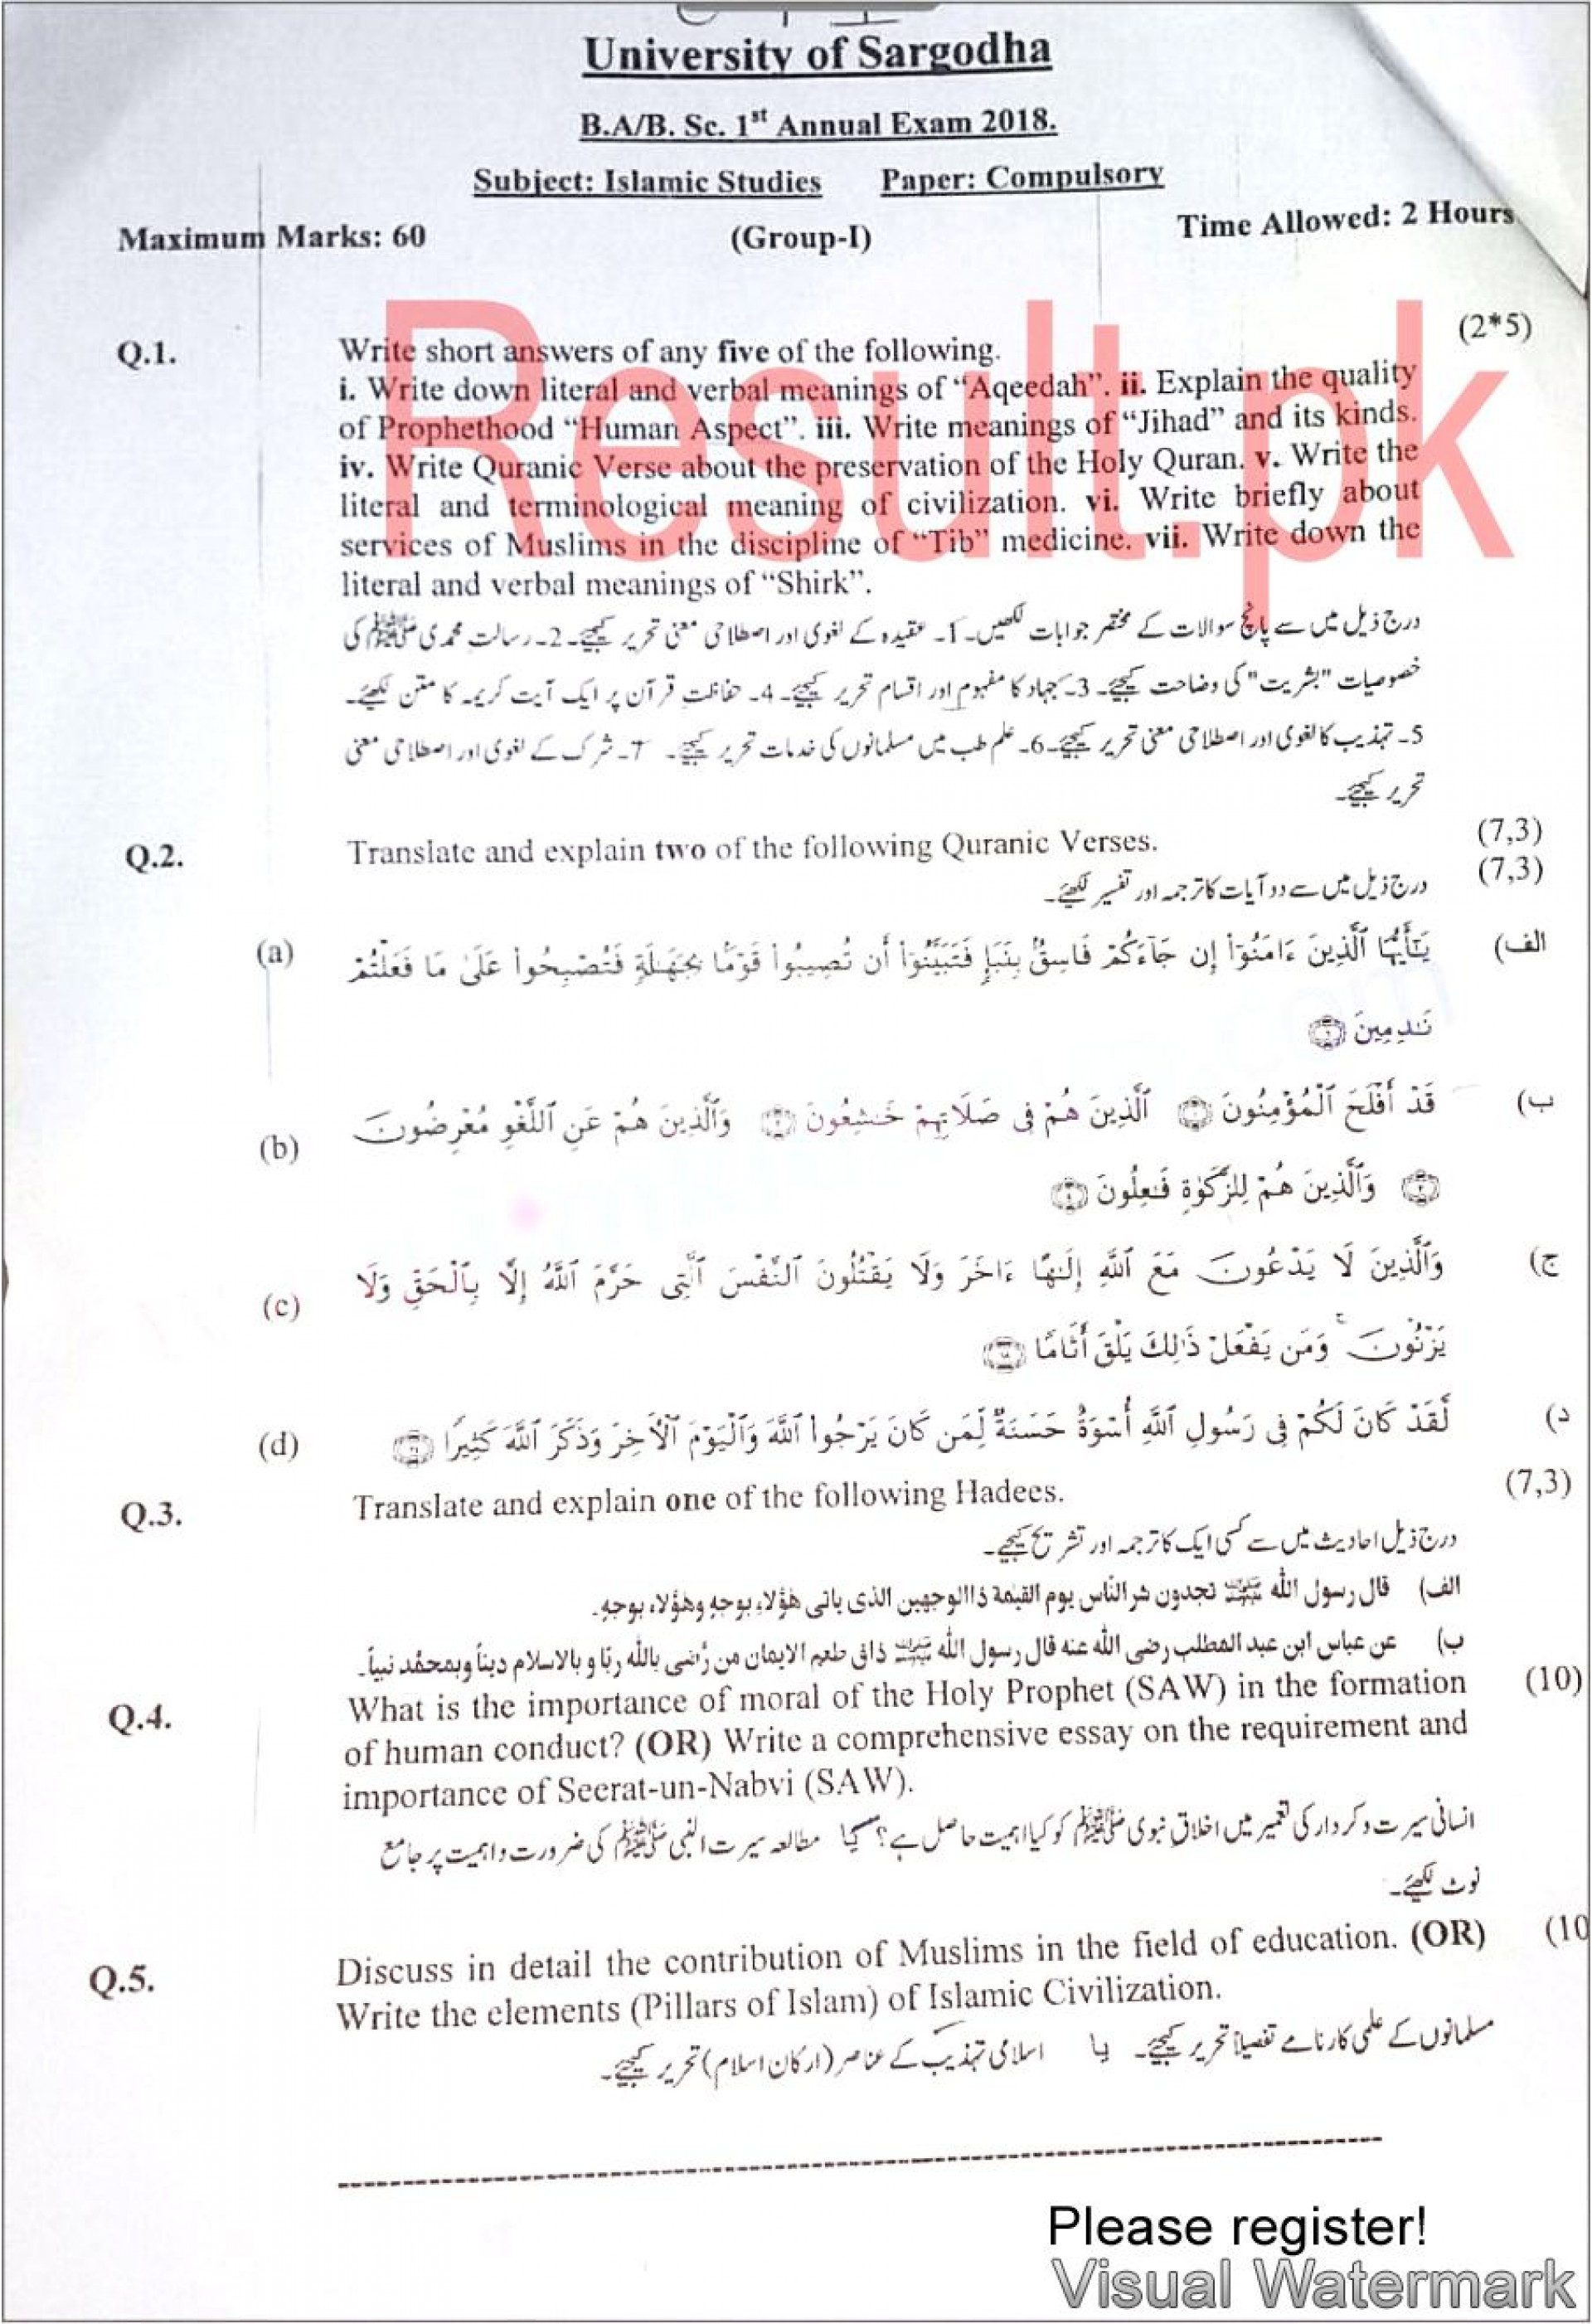 012 Research Paper Past Sargodha University Bsc Islamic Studies Subjective Group Educational Exam Amazing Papers 1920